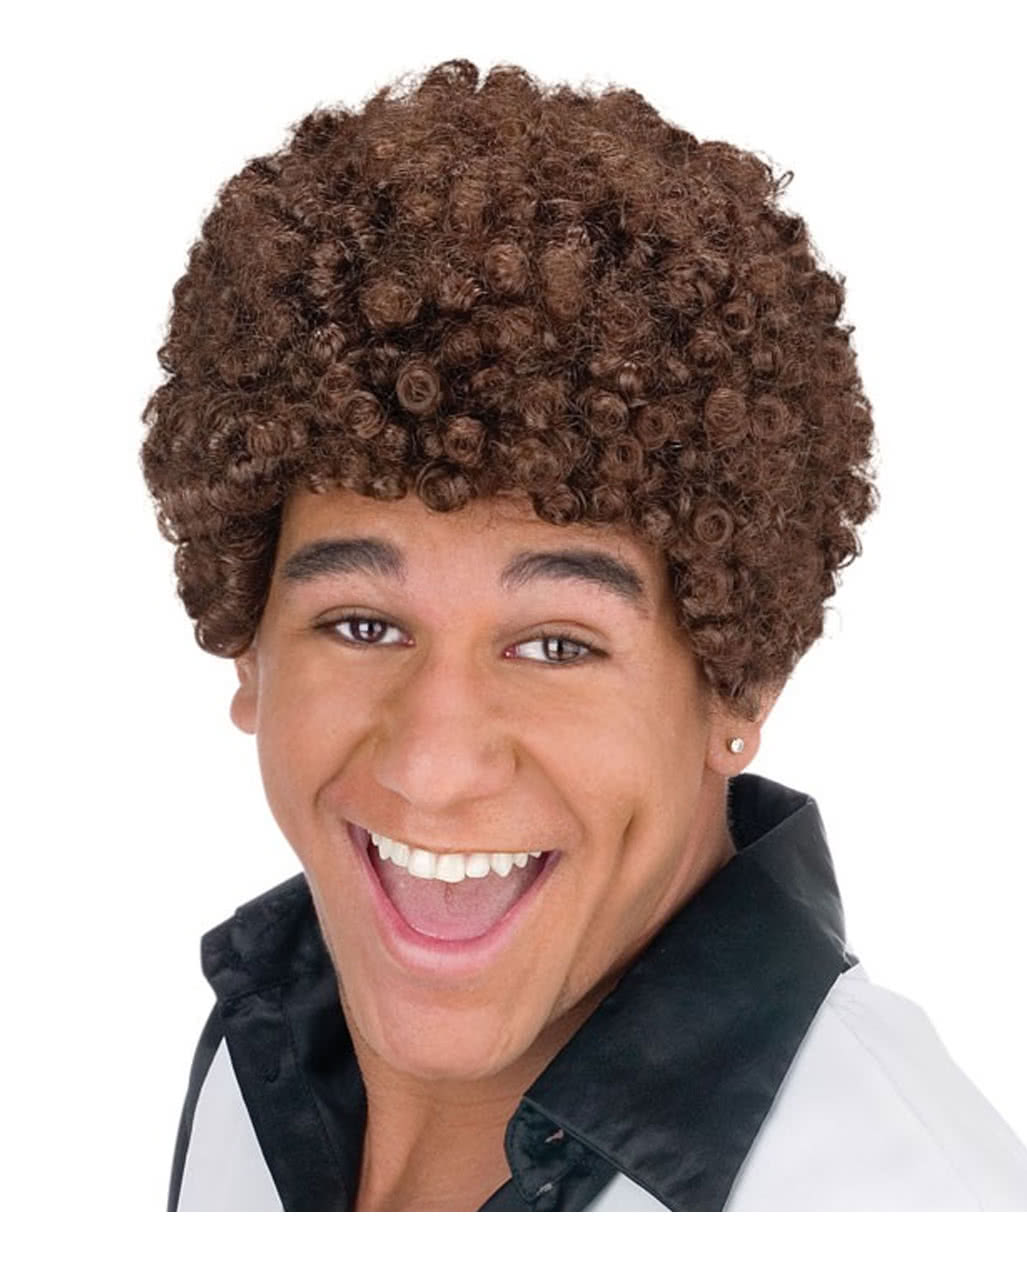 Atze Wig Brown Funny Curly Wig For Men Horror Shopcom